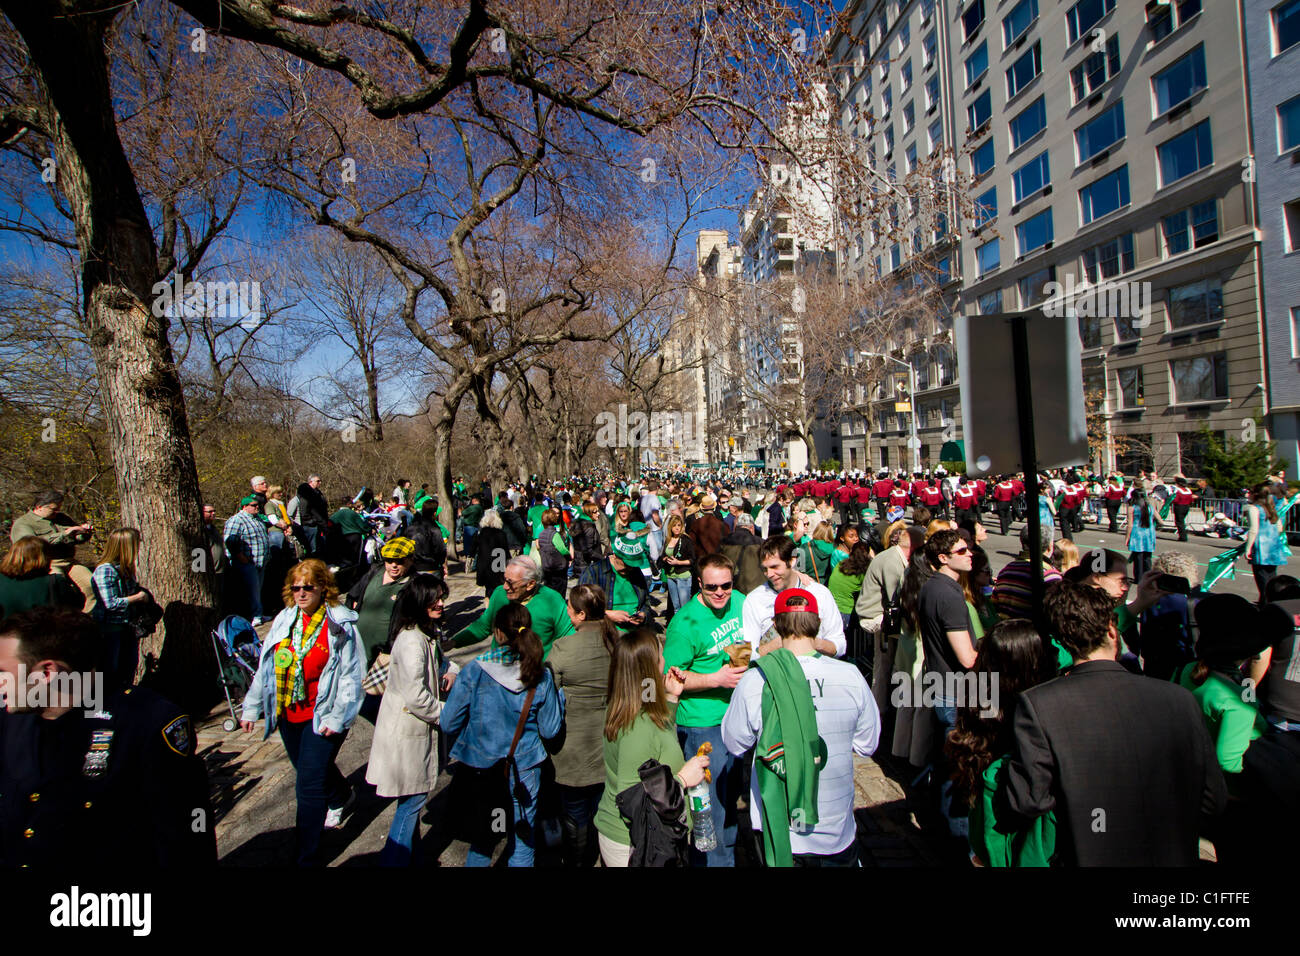 Thousands gather on Fifth Avenue to watch the 250th annual St. Patrick's Day parade in New York City - Stock Image